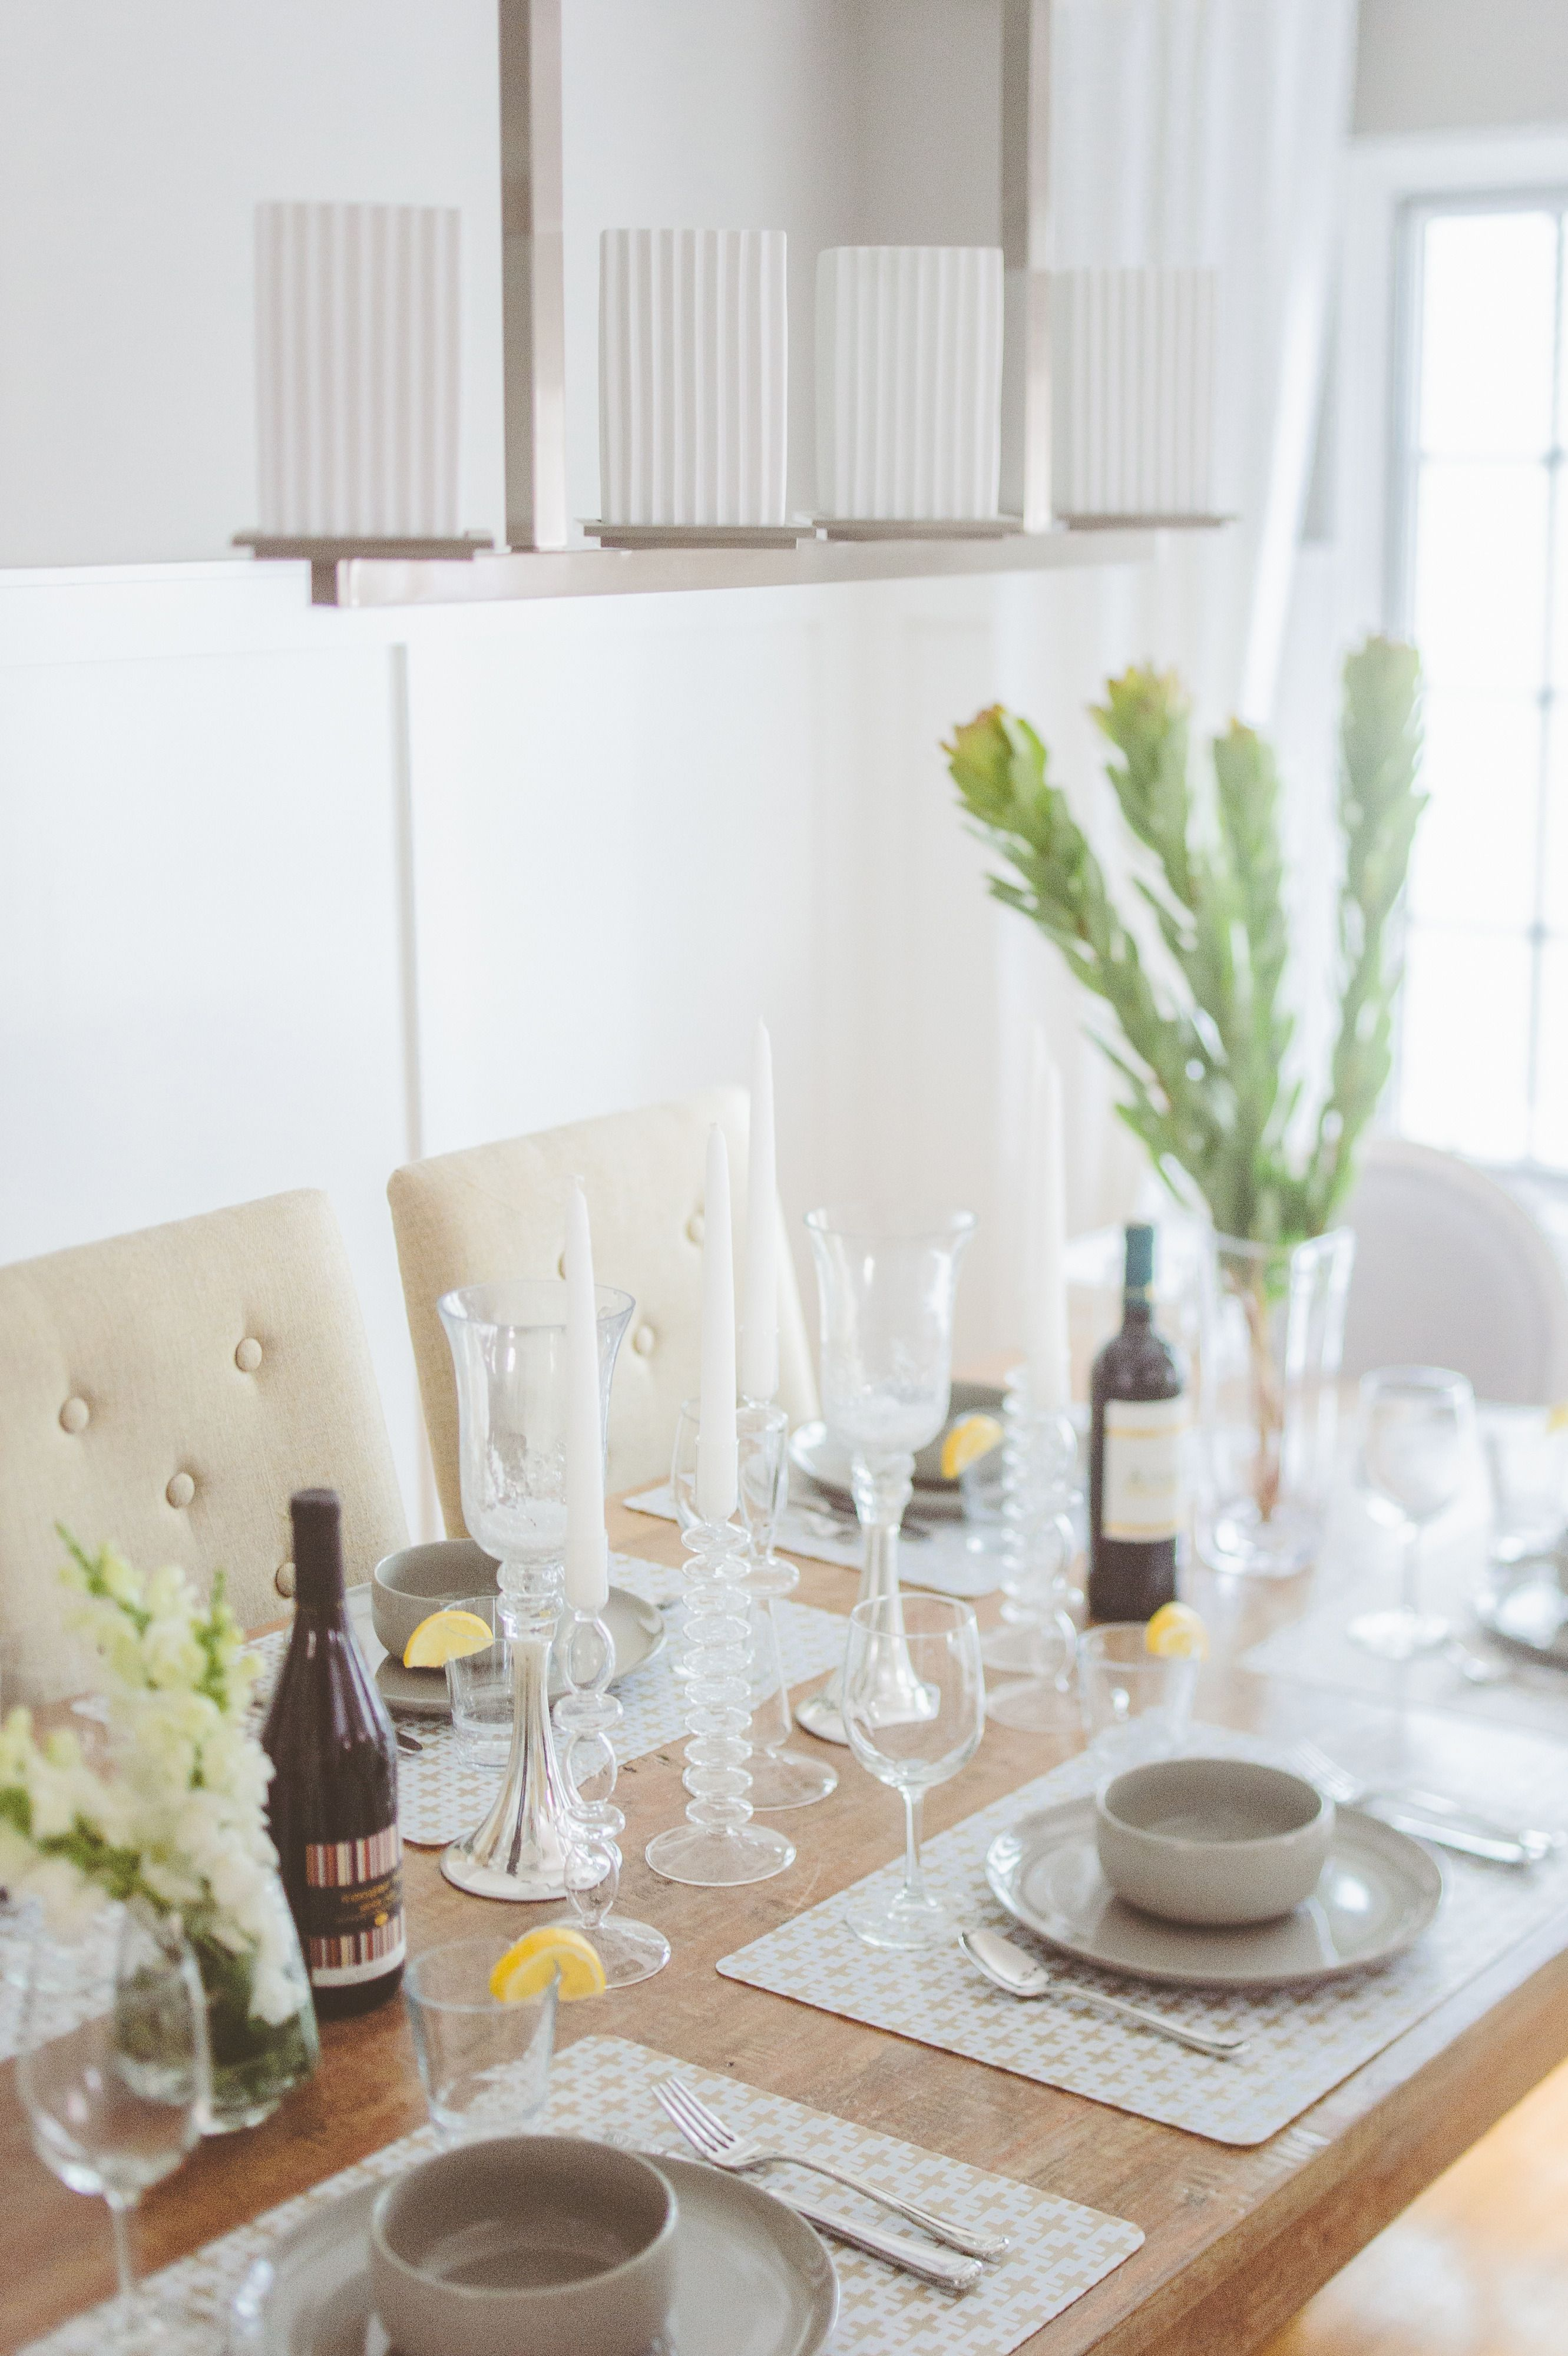 #tablescapes, #dining-room, #chandelier, #neutral  Photography: Paper Antler - paperantler.com  Read More: http://www.stylemepretty.com/2014/01/10/smp-living-spotlight-27/